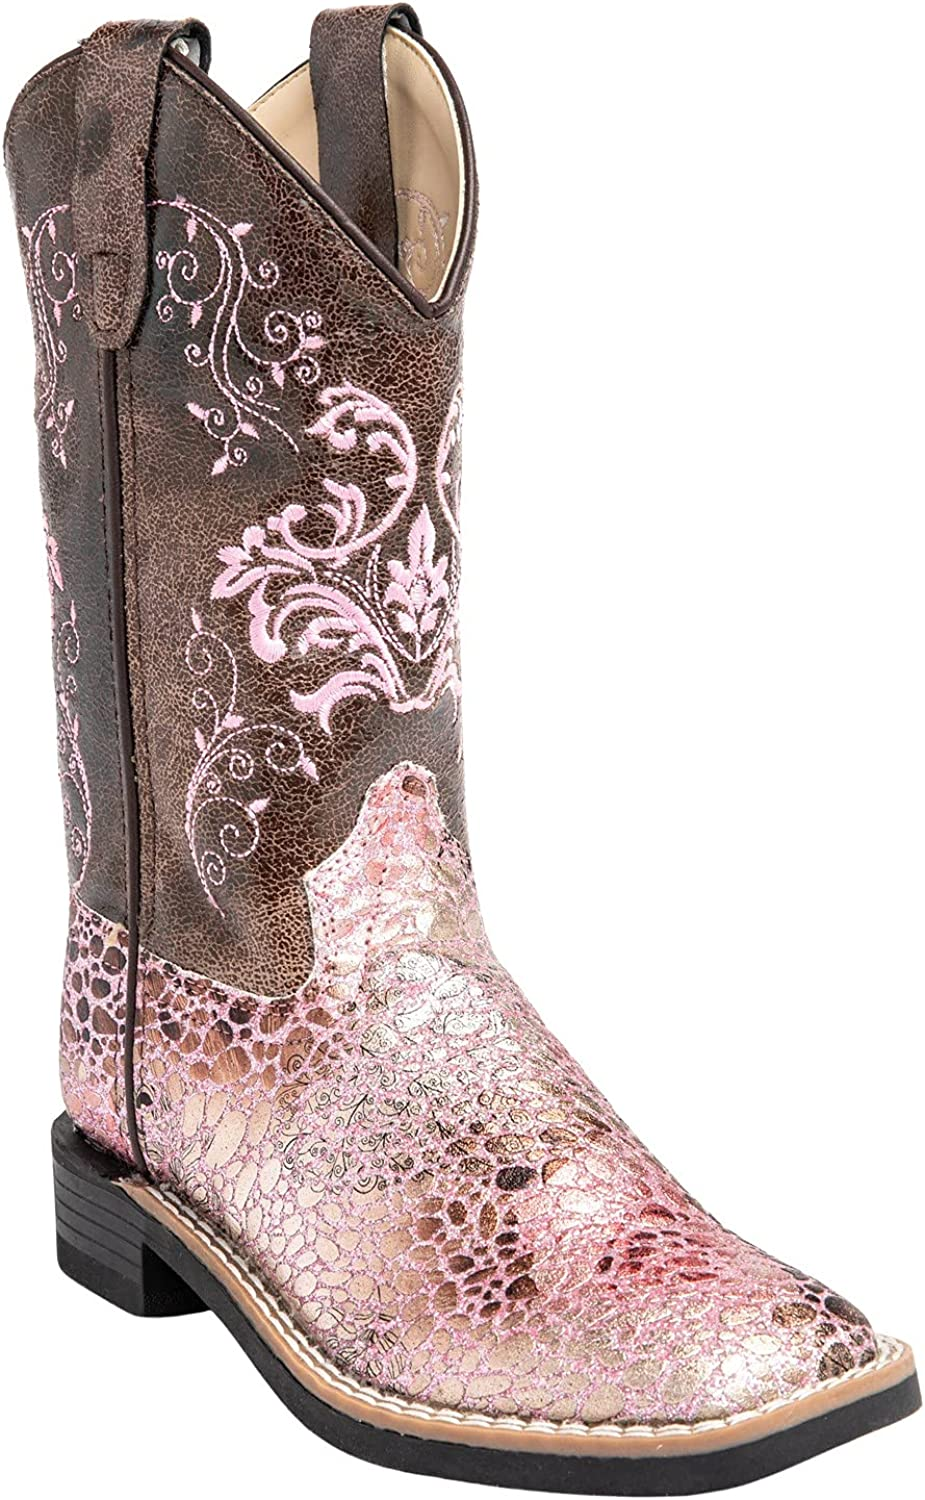 Shyanne Girls' Faux Leather Western Boot SALENEW very popular Square - Toe Bvb9154 55% OFF